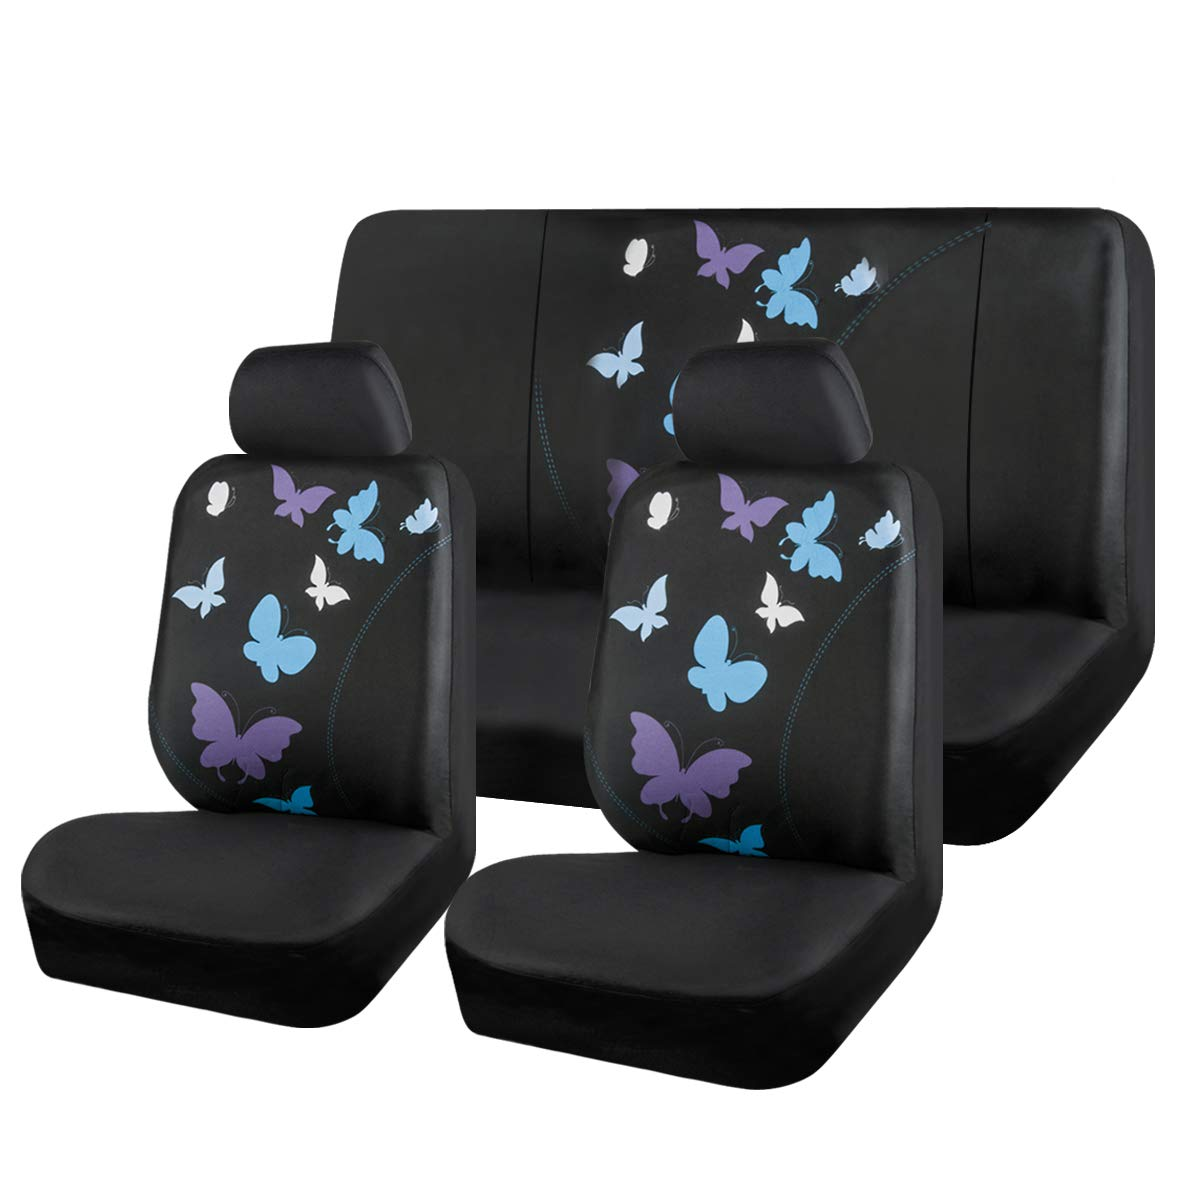 Black and Blue CAR PASS Universal Butterfly Car Seat Covers for Women Girls Car Truck SUV Vans